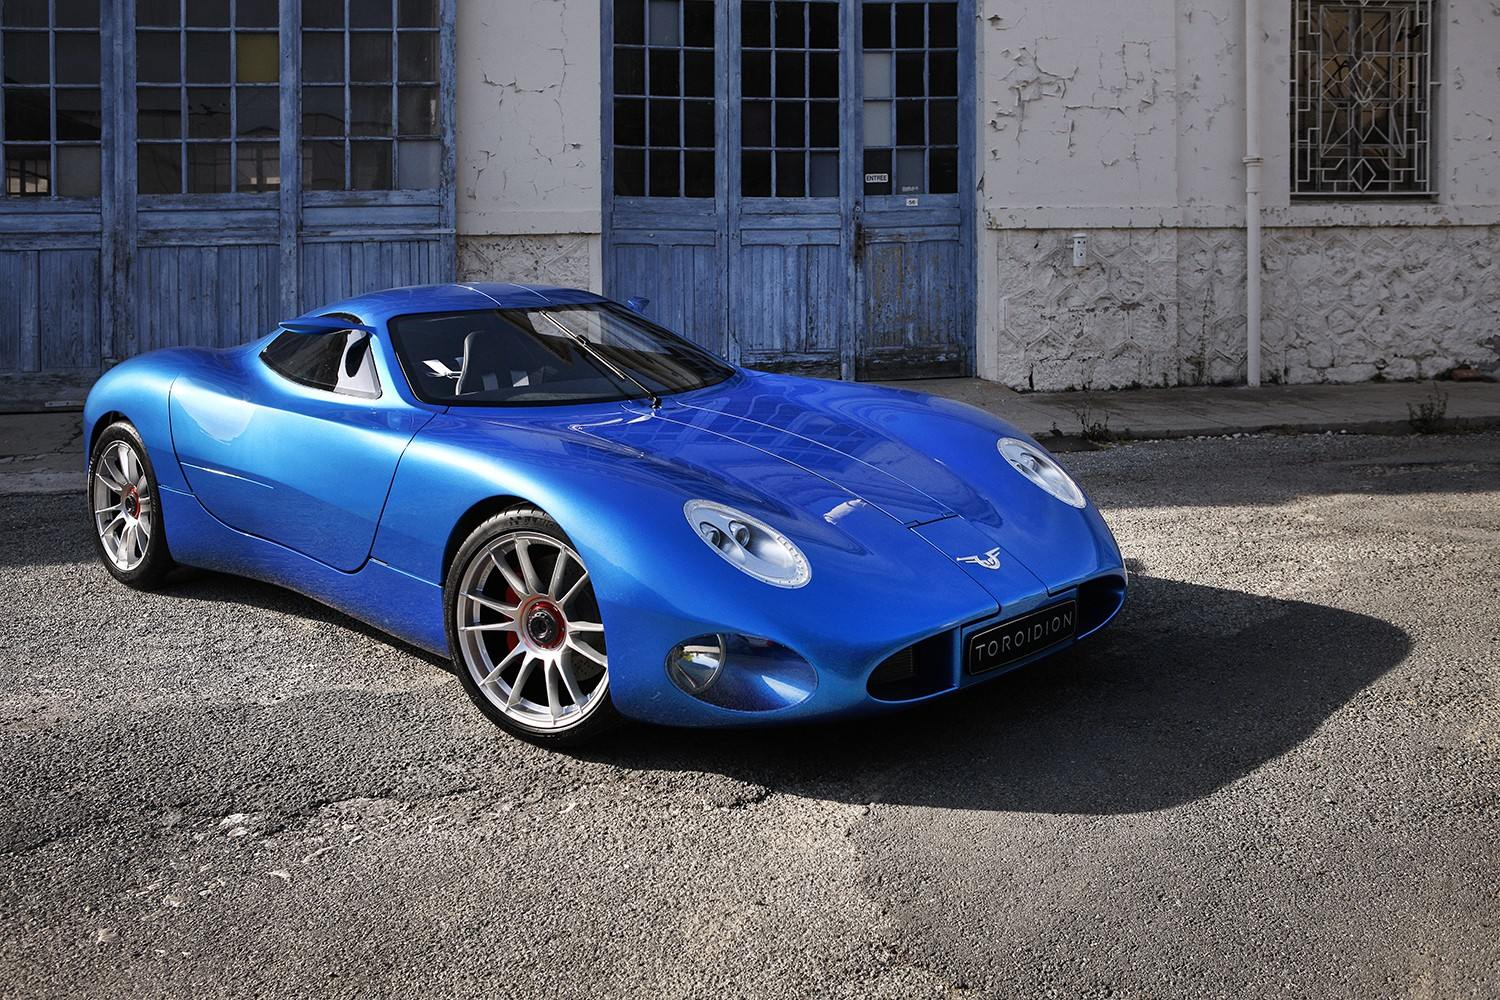 1mw-toroidion-supercar-makes-a-debut-in-monaco-during-top-marques-photo-gallery_11